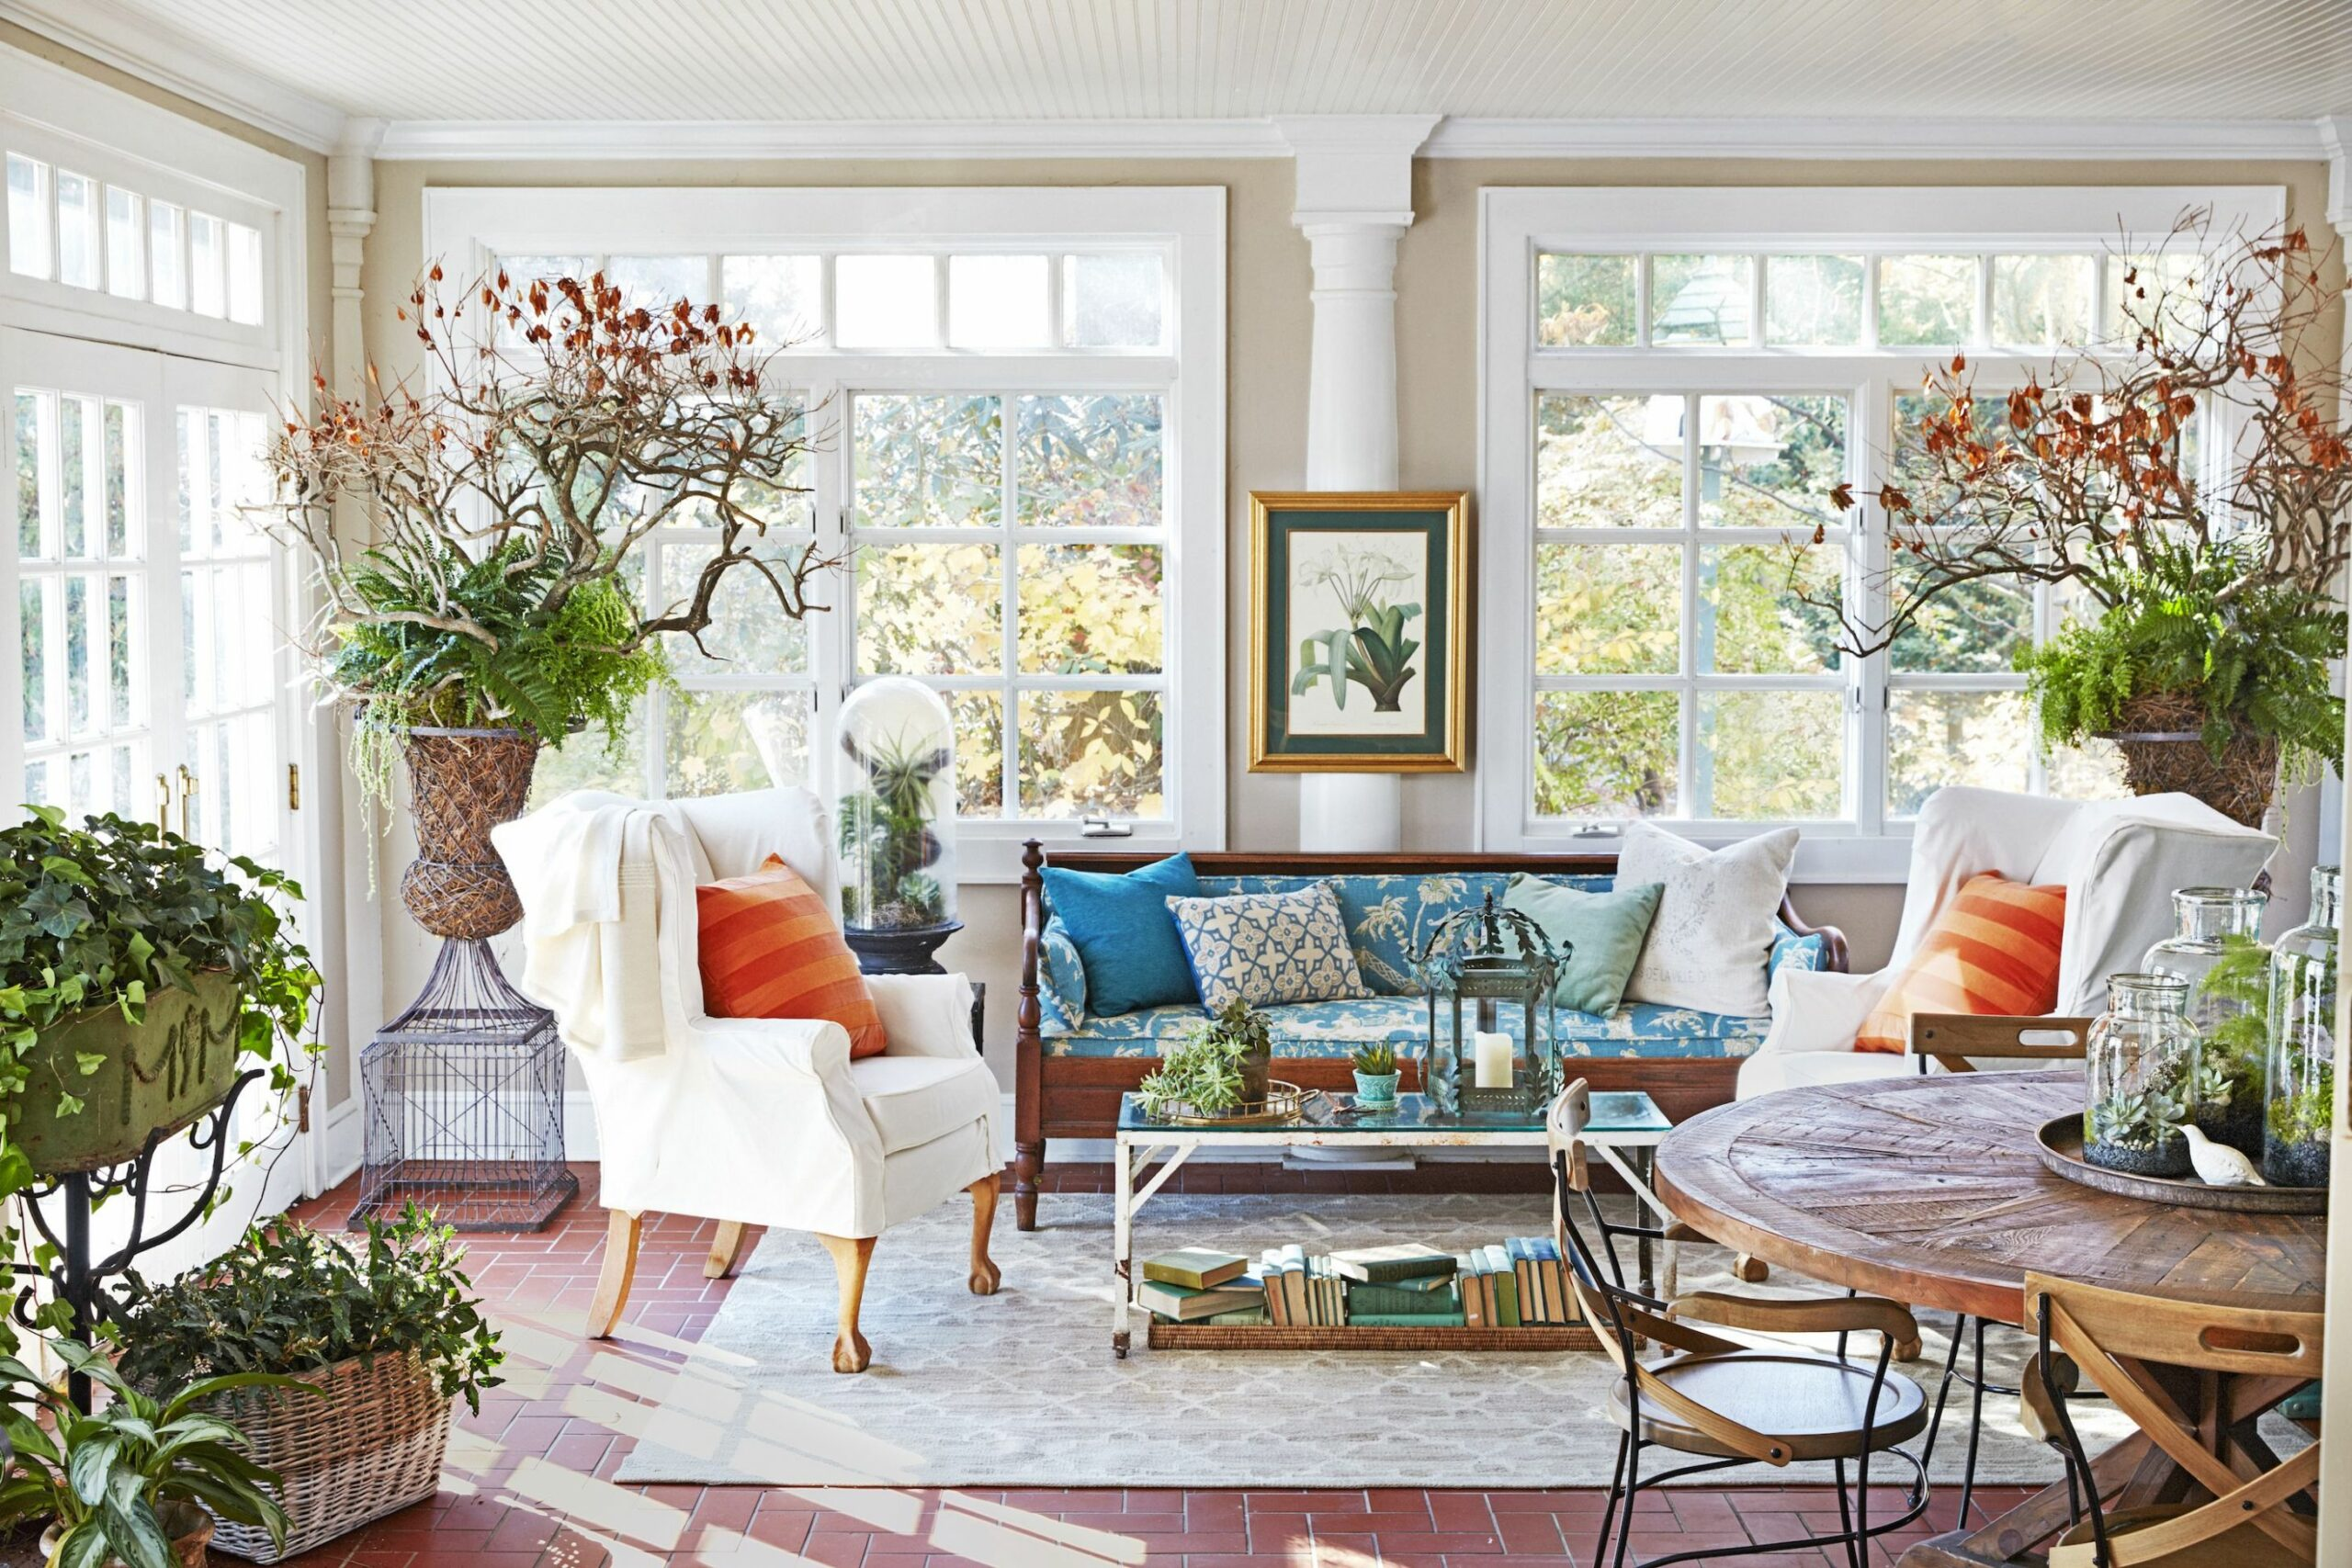 9 Sunroom Decorating Ideas - Best Designs for Sun Rooms - sunroom ideas pics